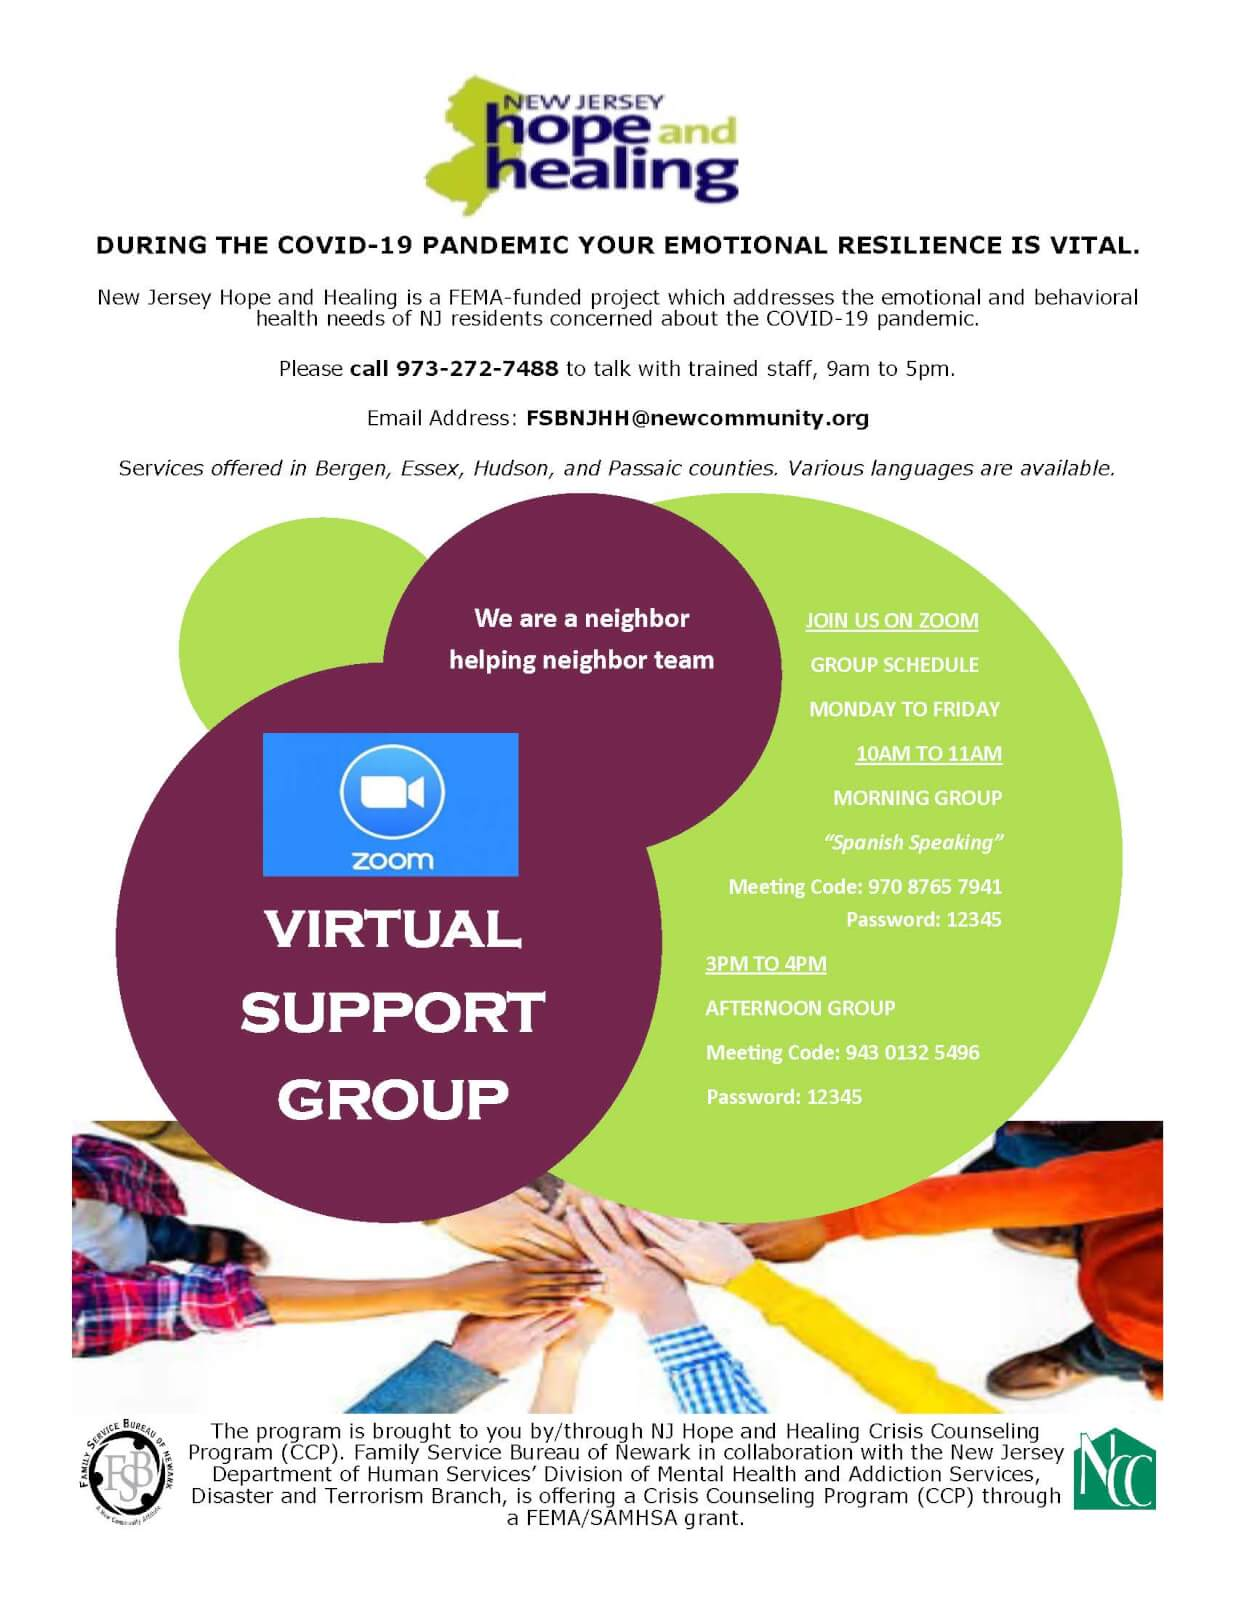 COVID-19 Virtual Support Group (Spanish Speaking)